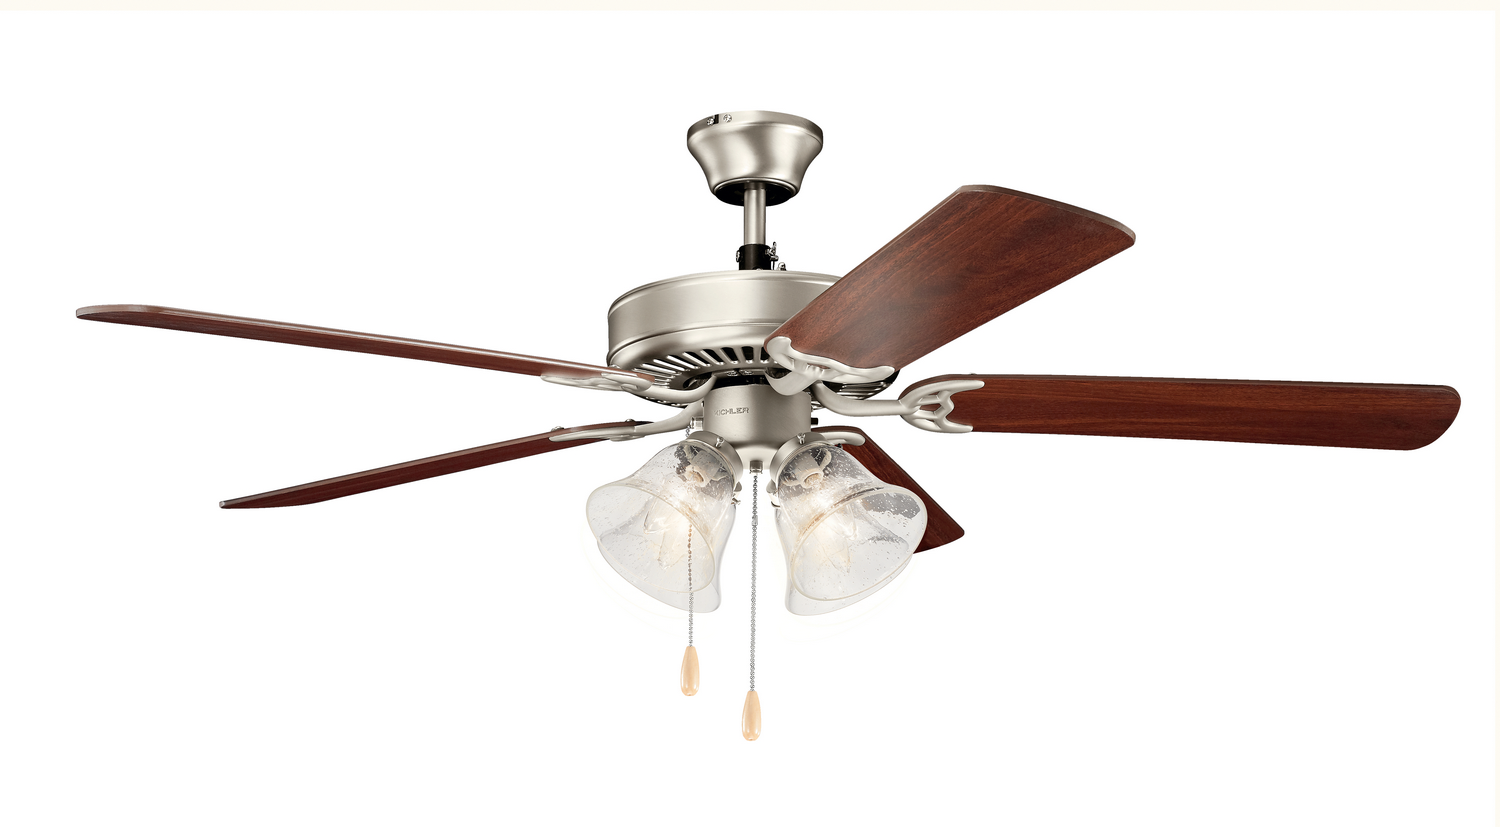 52 inchCeiling Fan from the Basics collection by Kichler 402NI7S